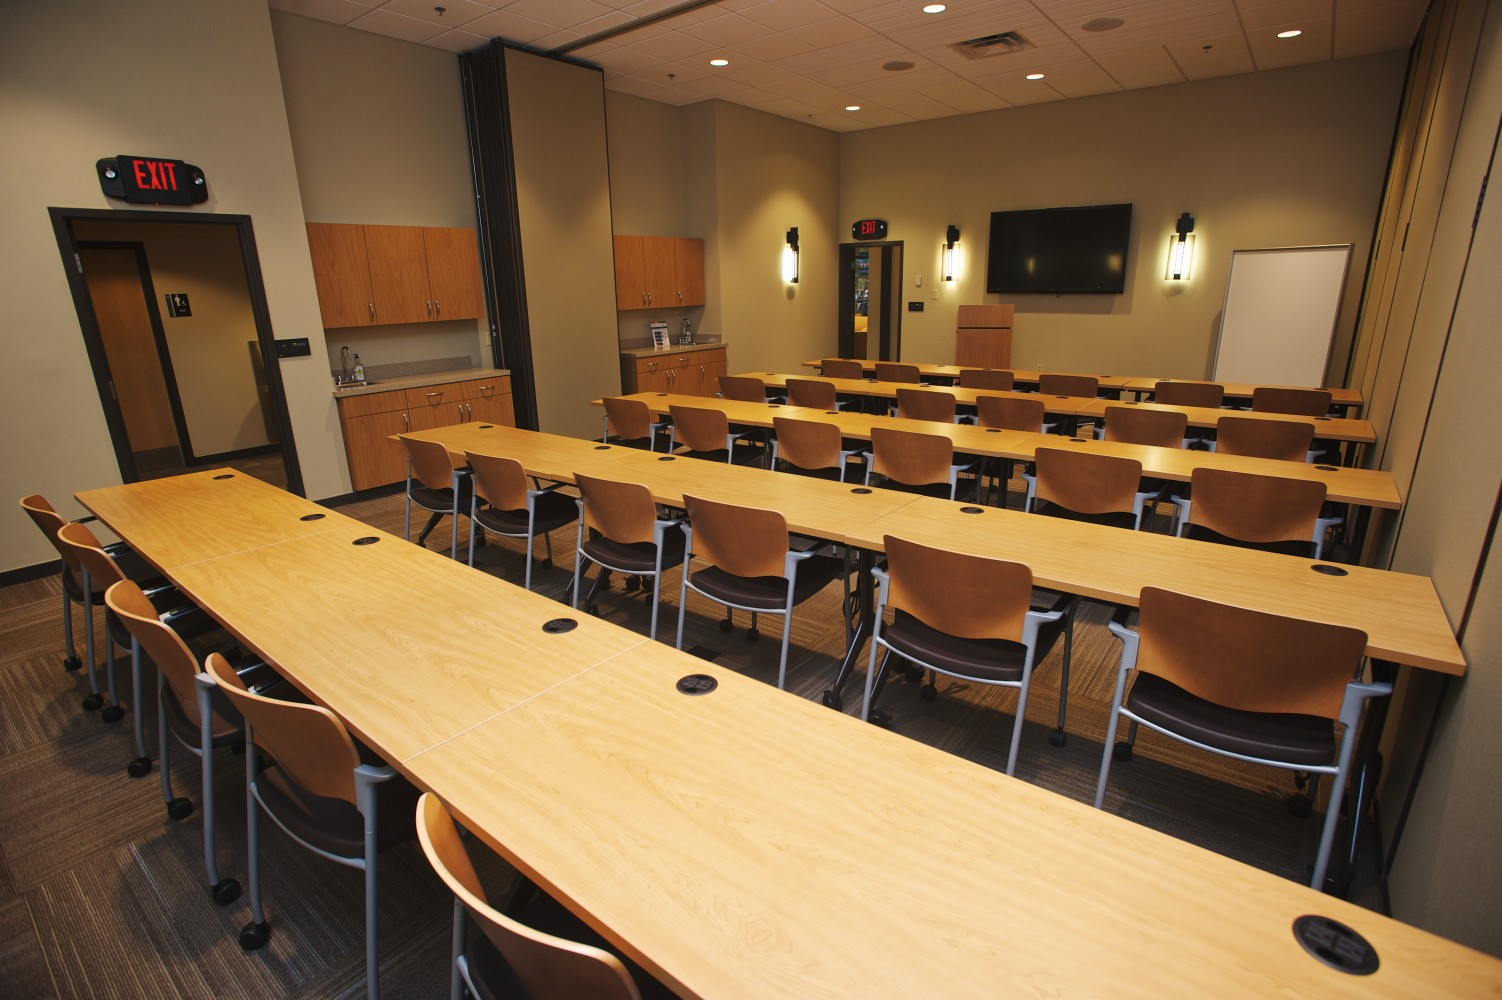 Classroom space for rent in Brentwood, TN at Envision, for meeting space, large and small event space and corporate training rooms, call today!